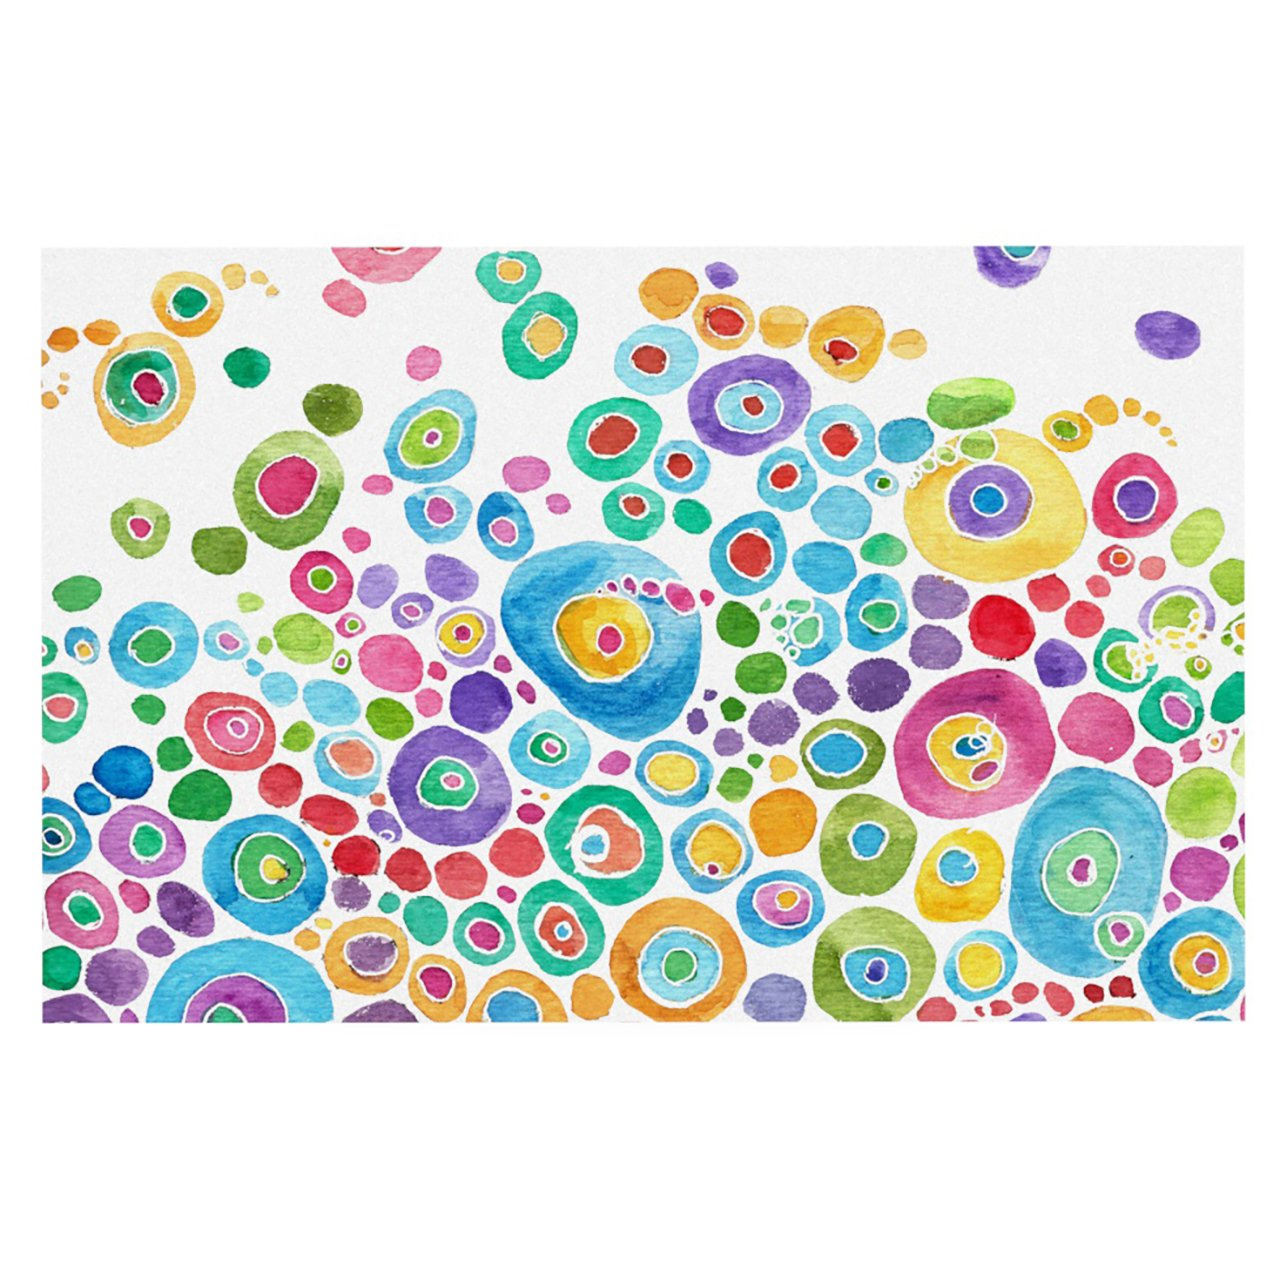 Kess InHouse Catherine Holcombe Inner Circle White Feeding Mat for Pet Bowl, 18 by 13-Inch